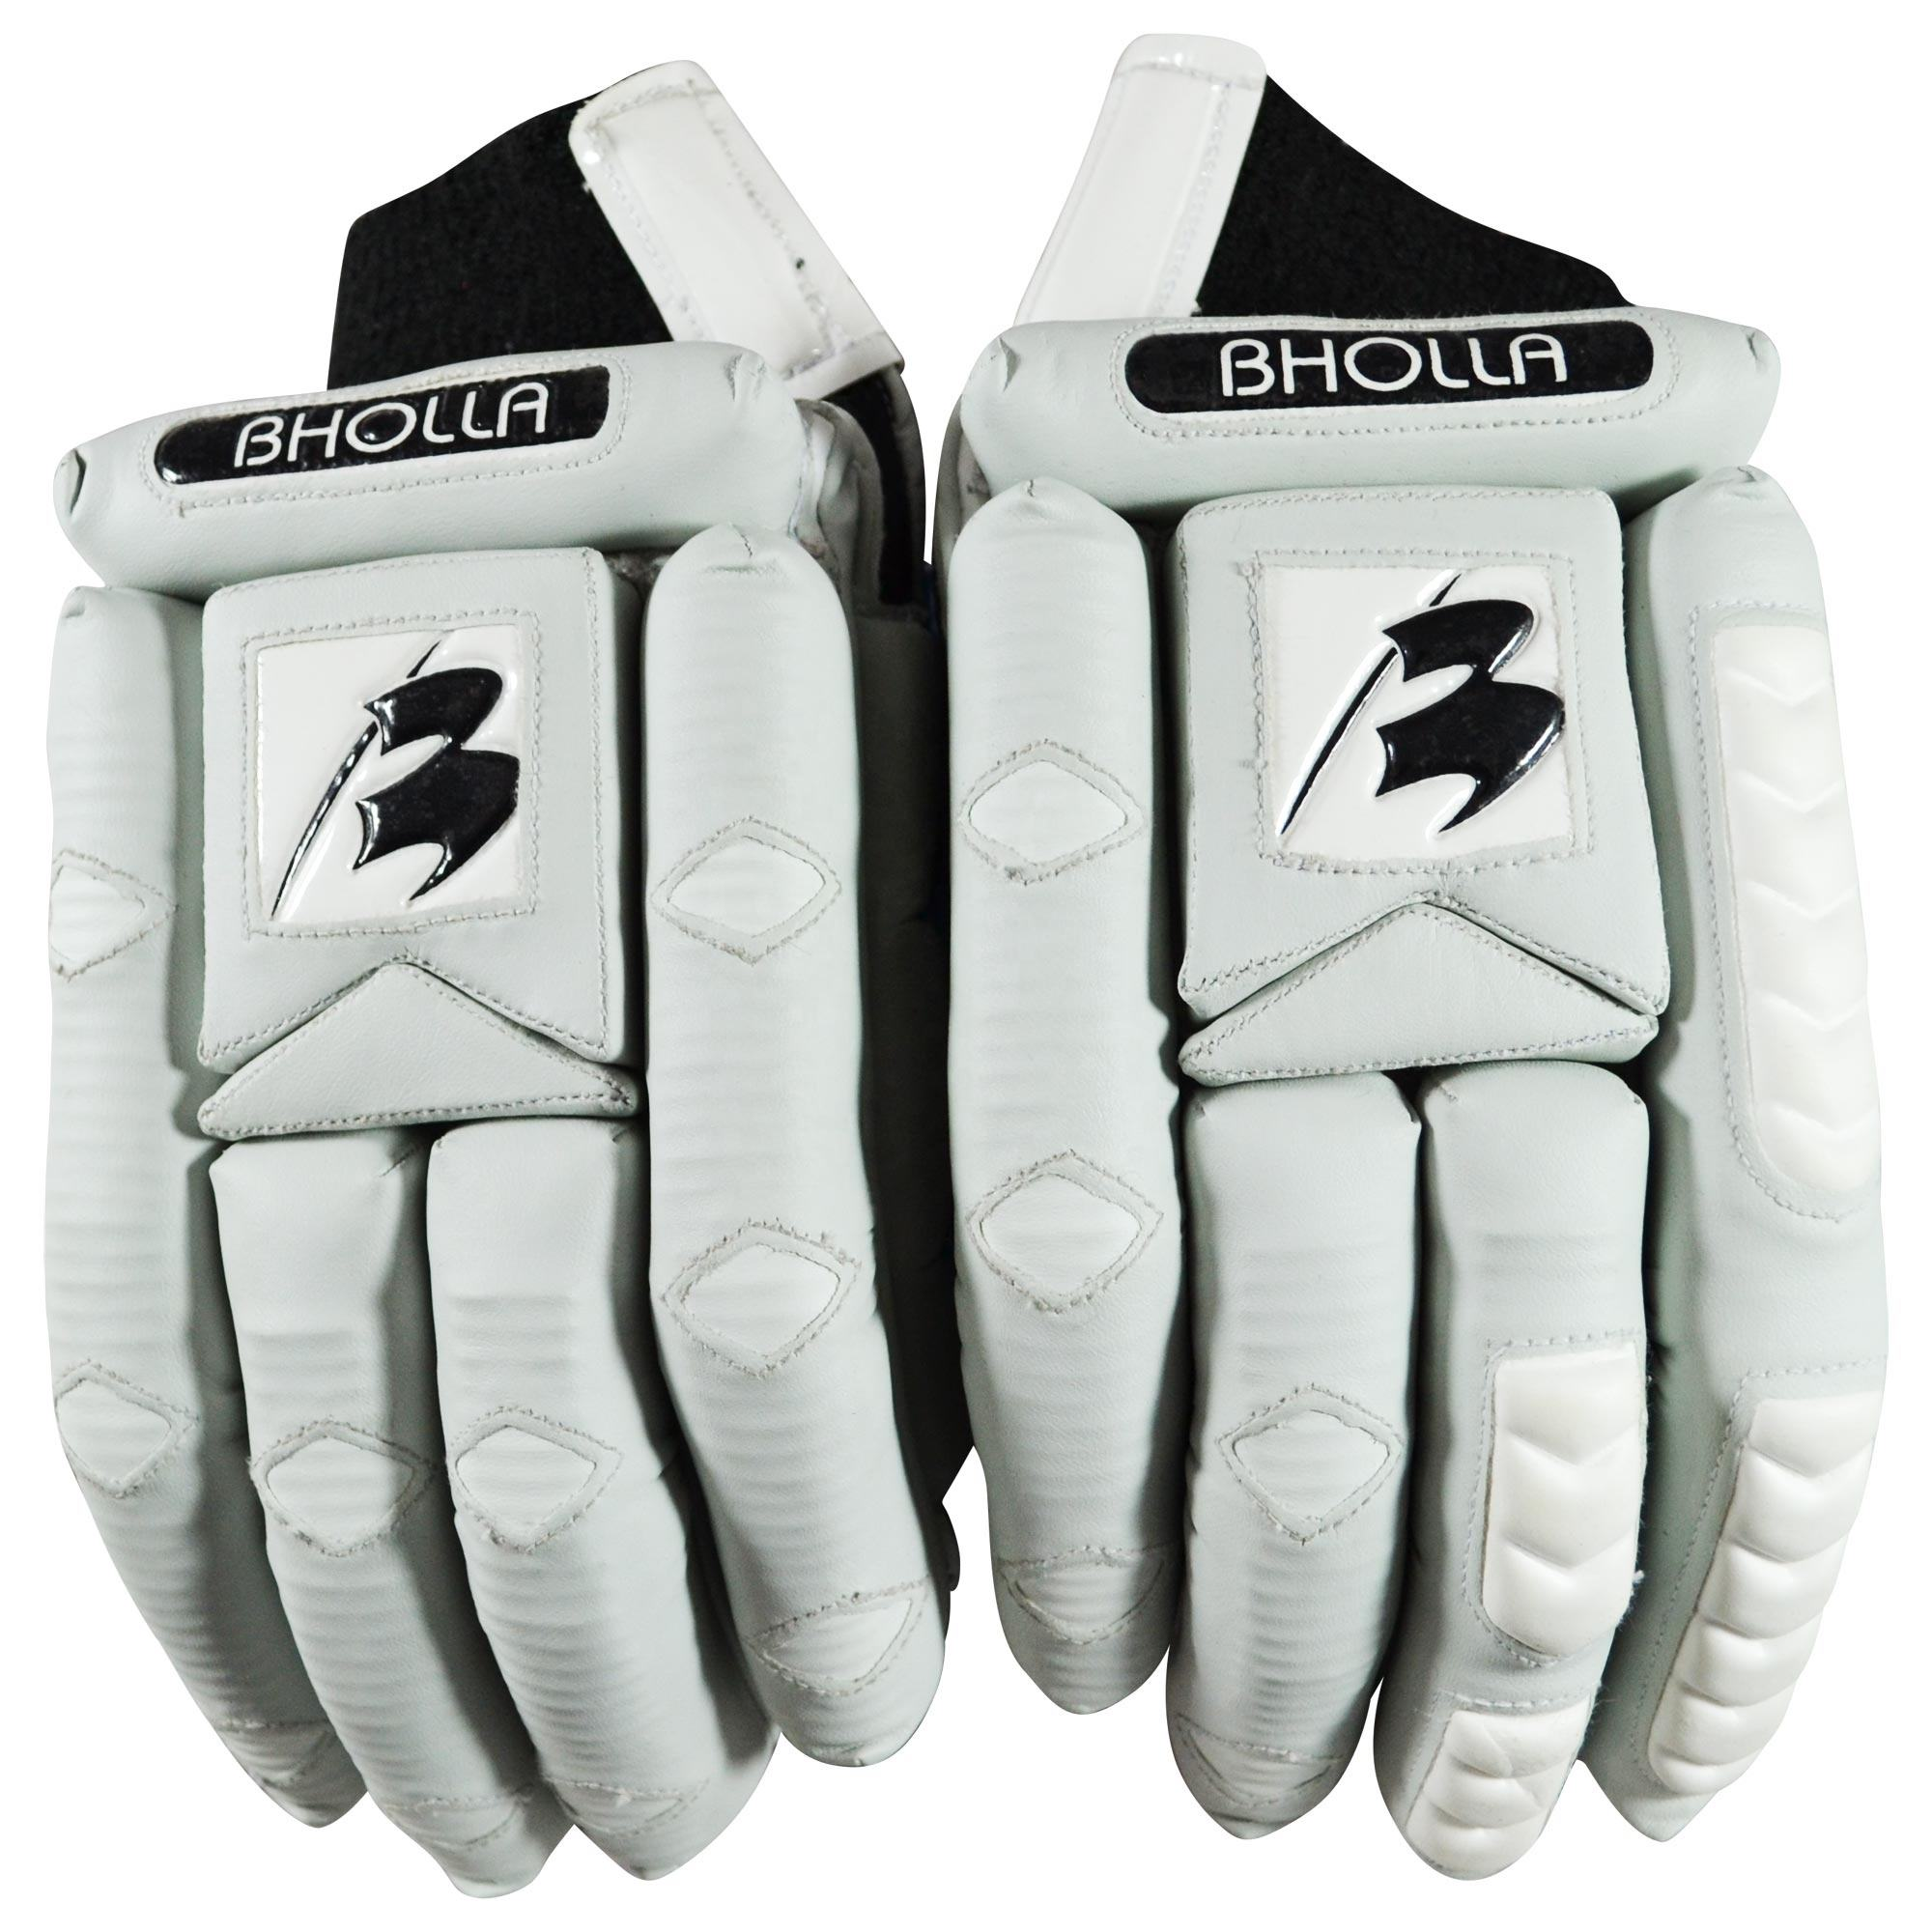 Pazz Cricket Batting Glove / Bholla Batting Gloves